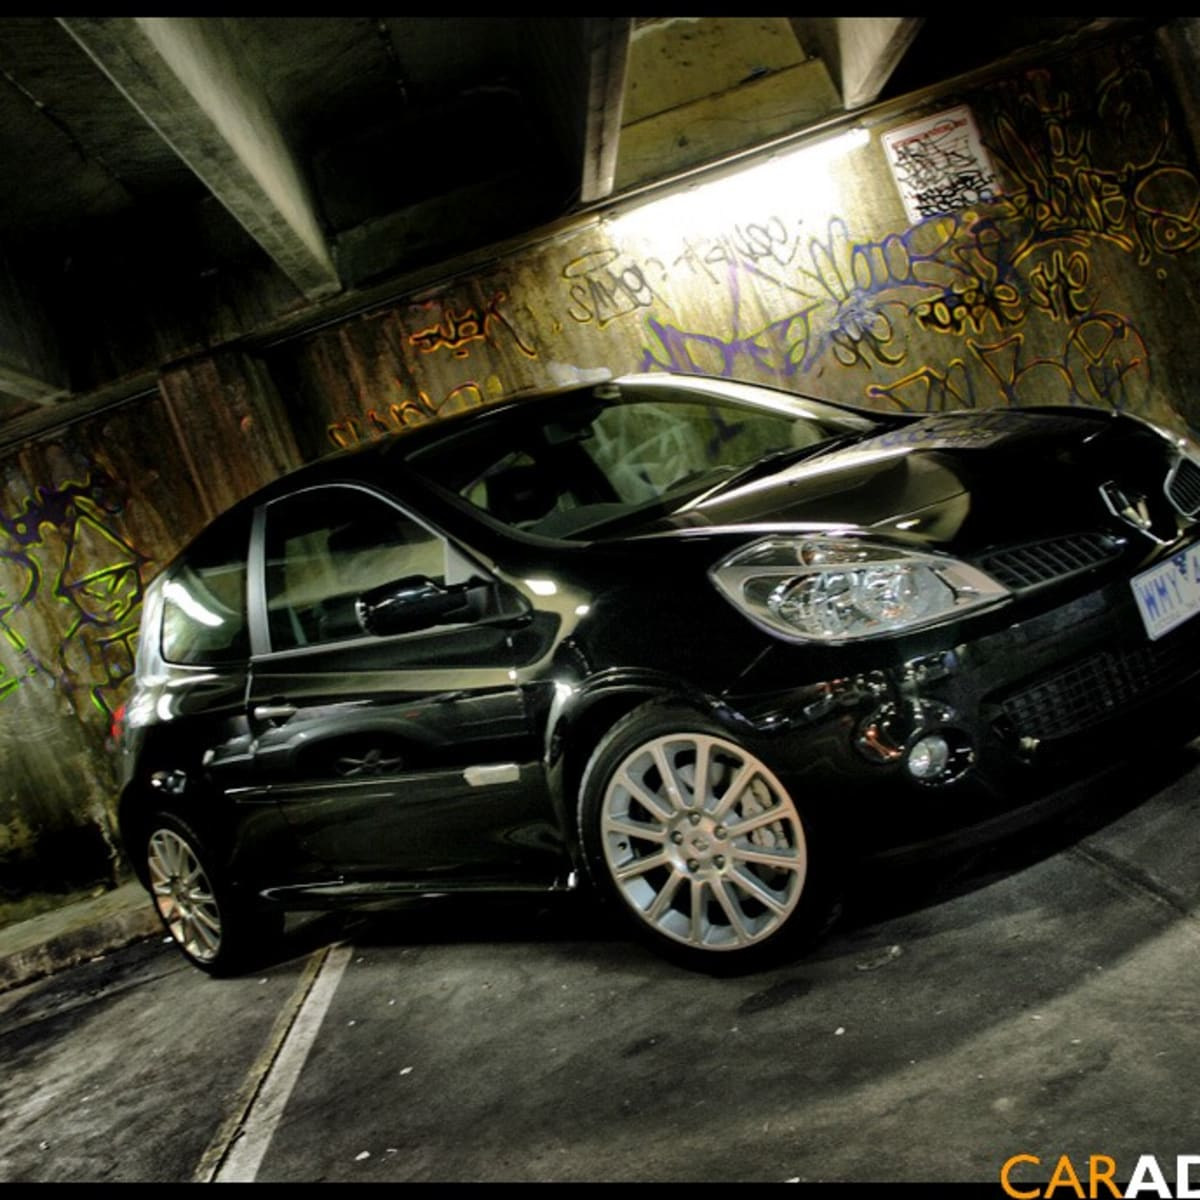 2008 Renault Clio Rs197 Review Caradvice